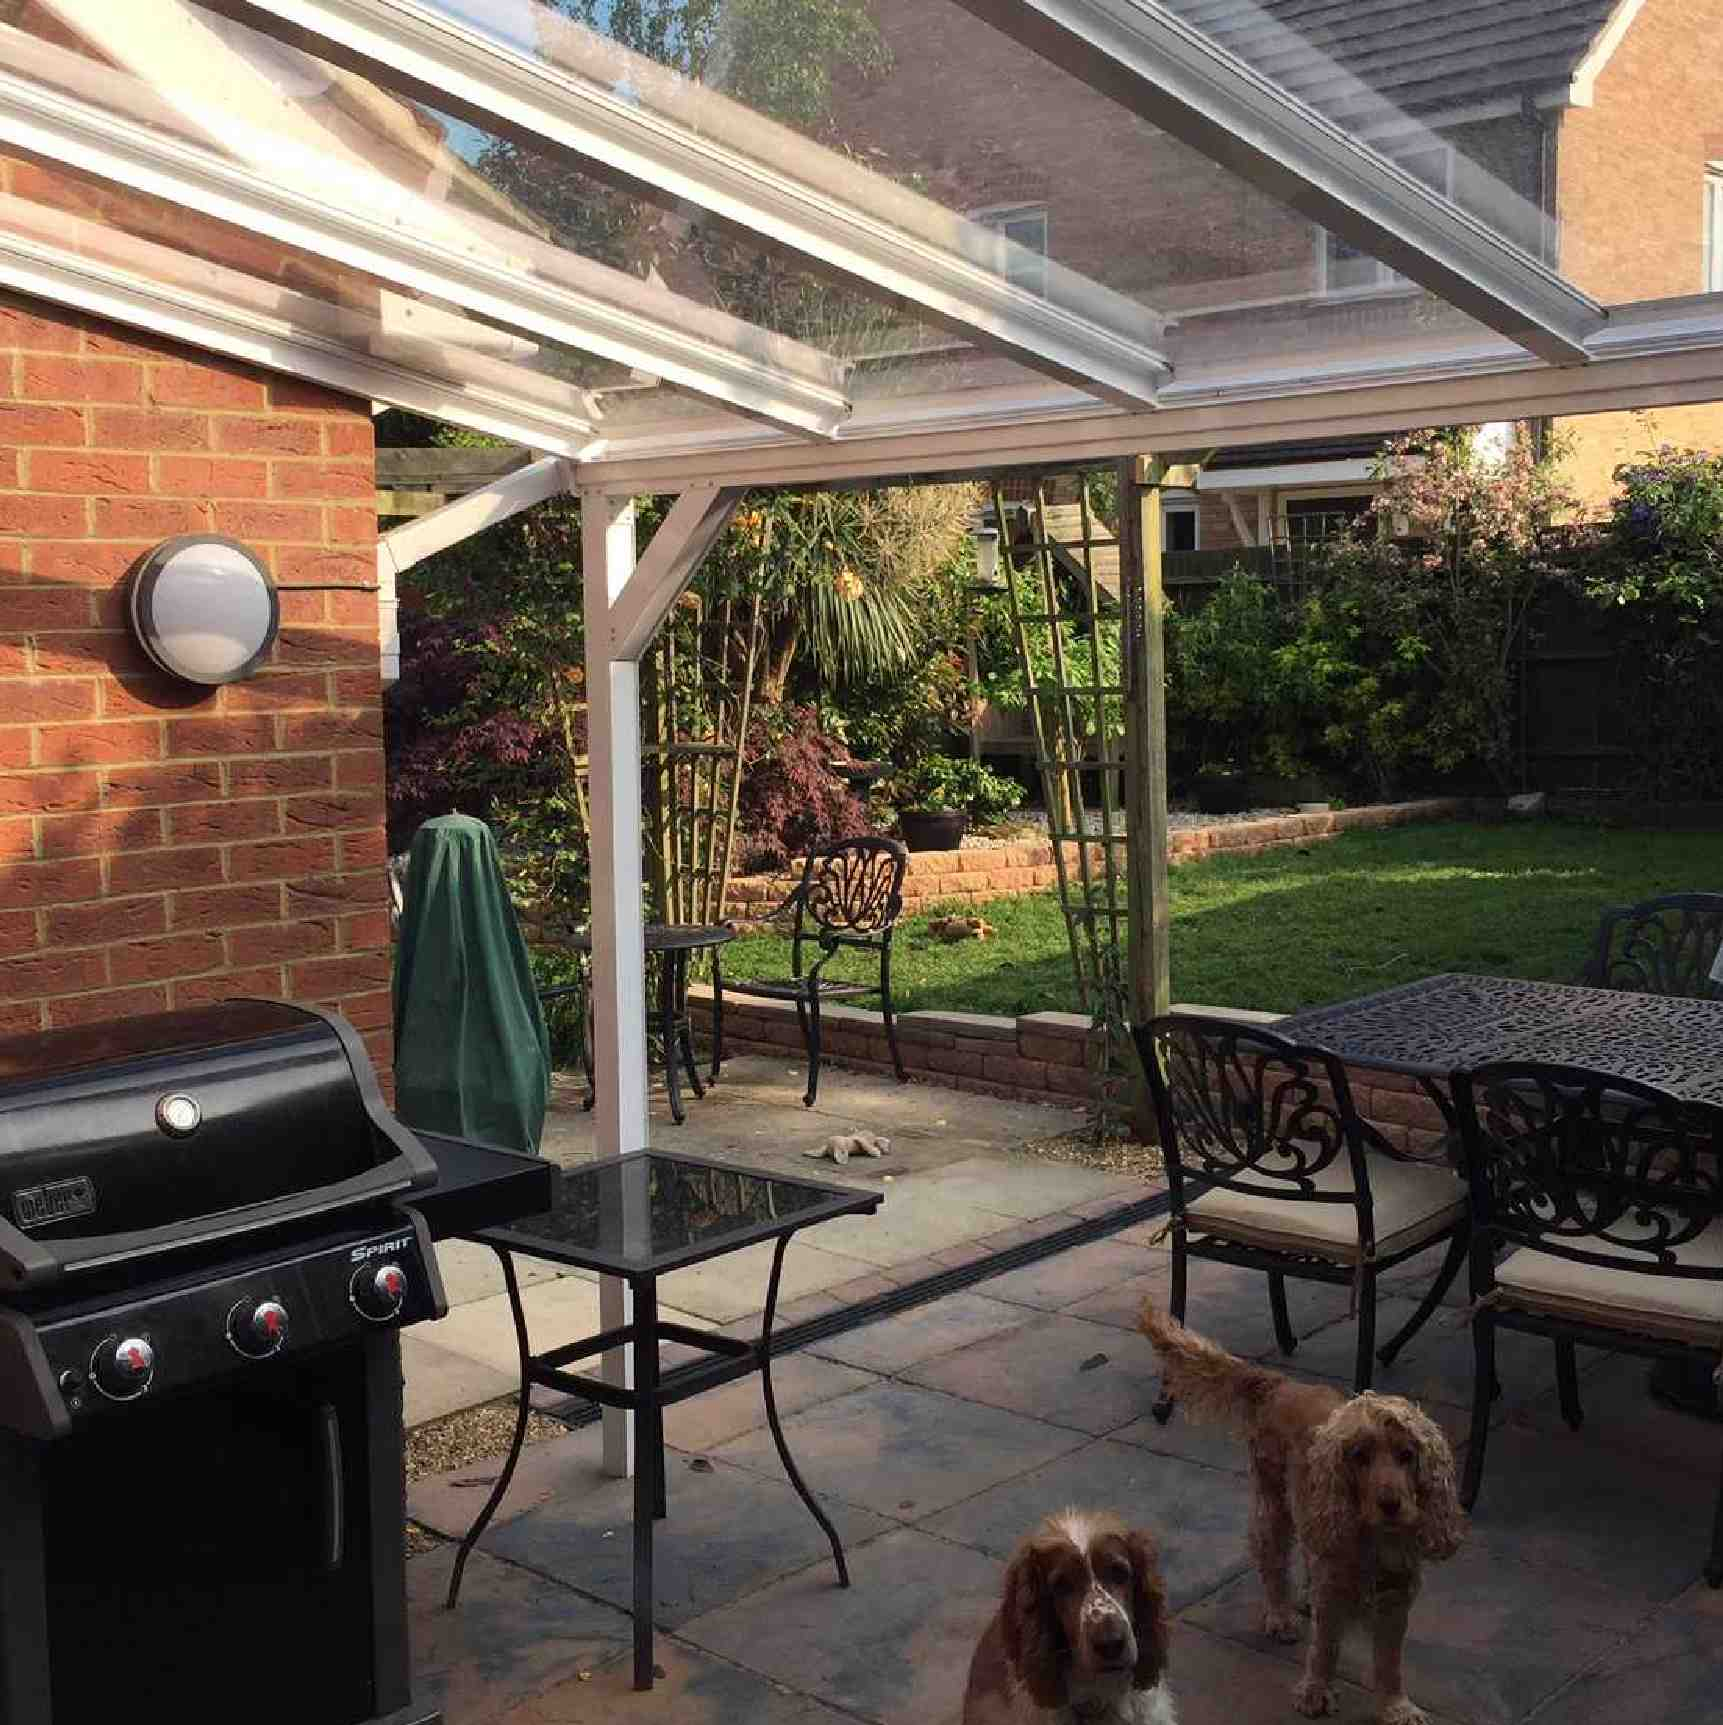 Omega Verandah with 16mm Polycarbonate Glazing - 6.3m (W) x 3.5m (P), (4) Supporting Posts